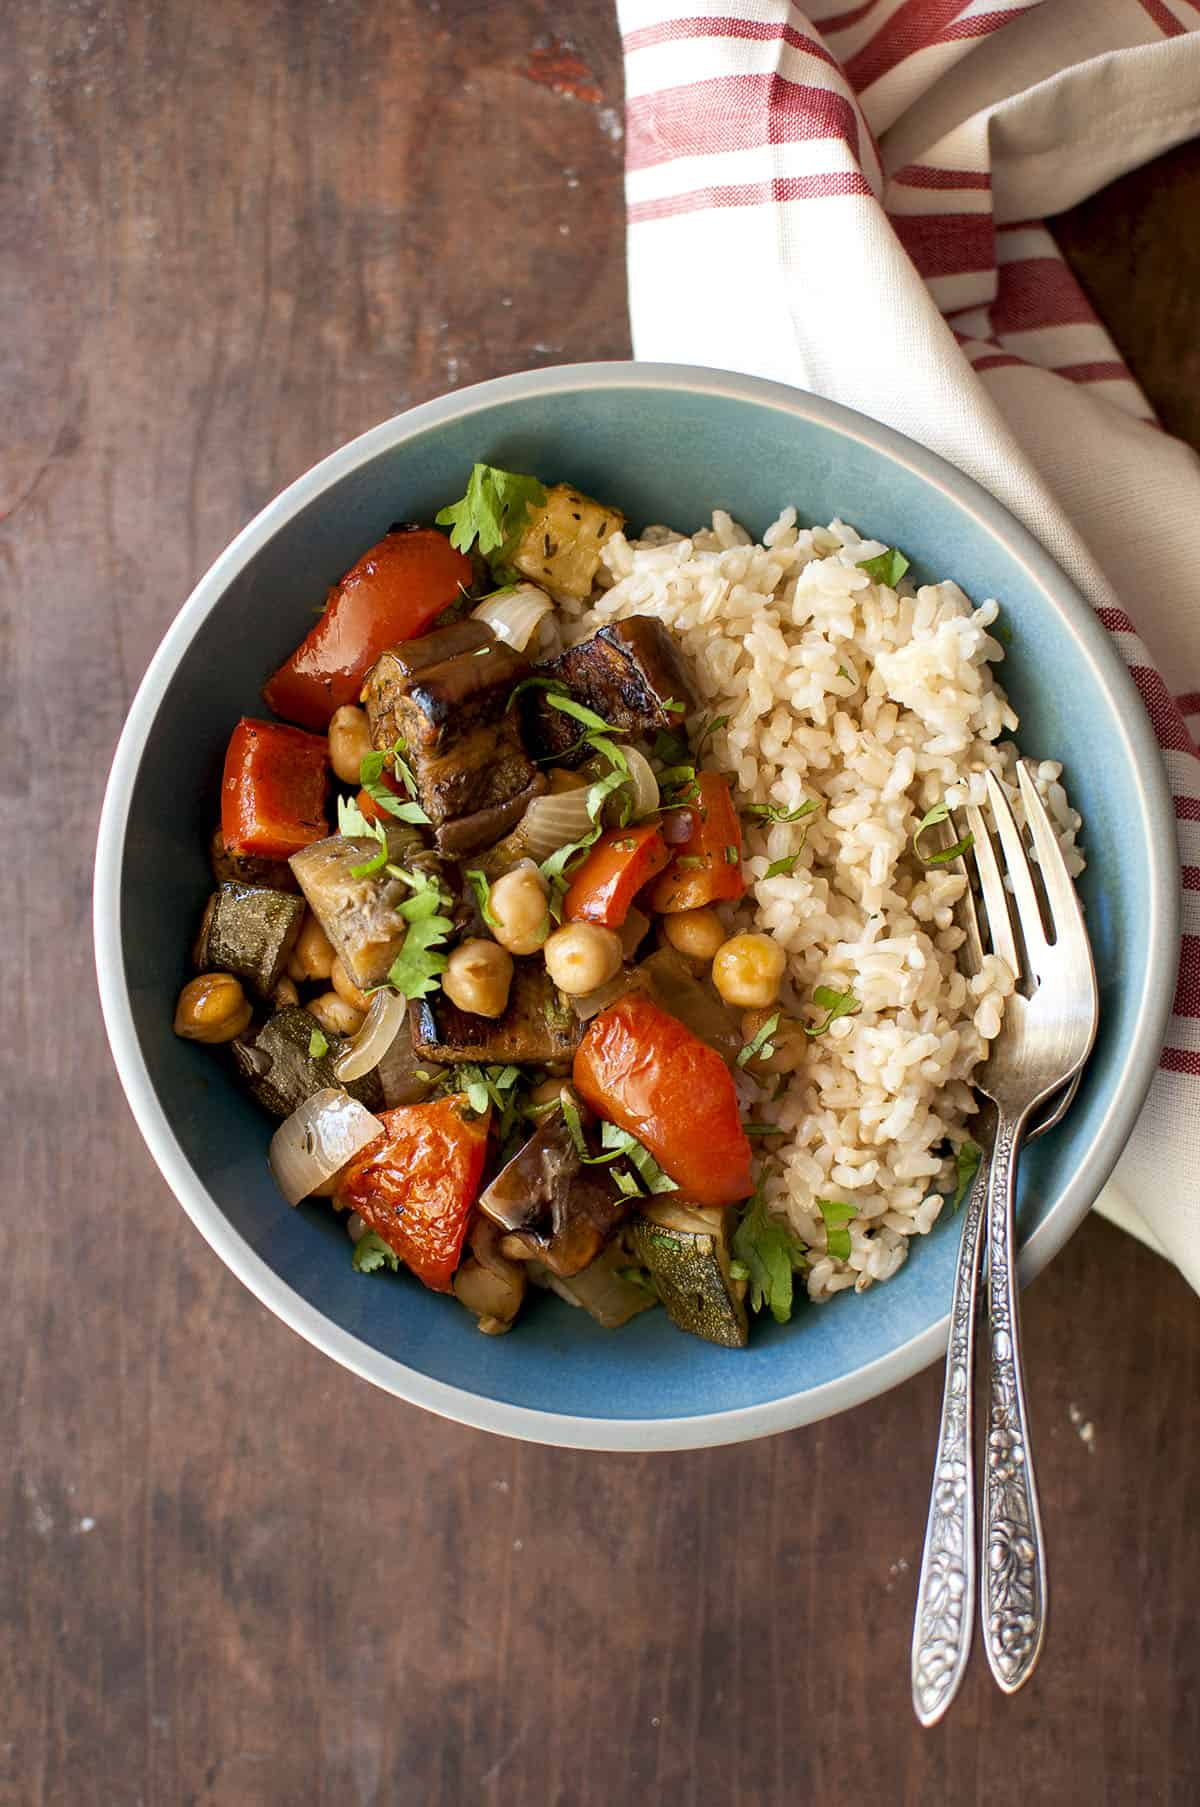 Blue bowl with half roasted veggies and half brown rice